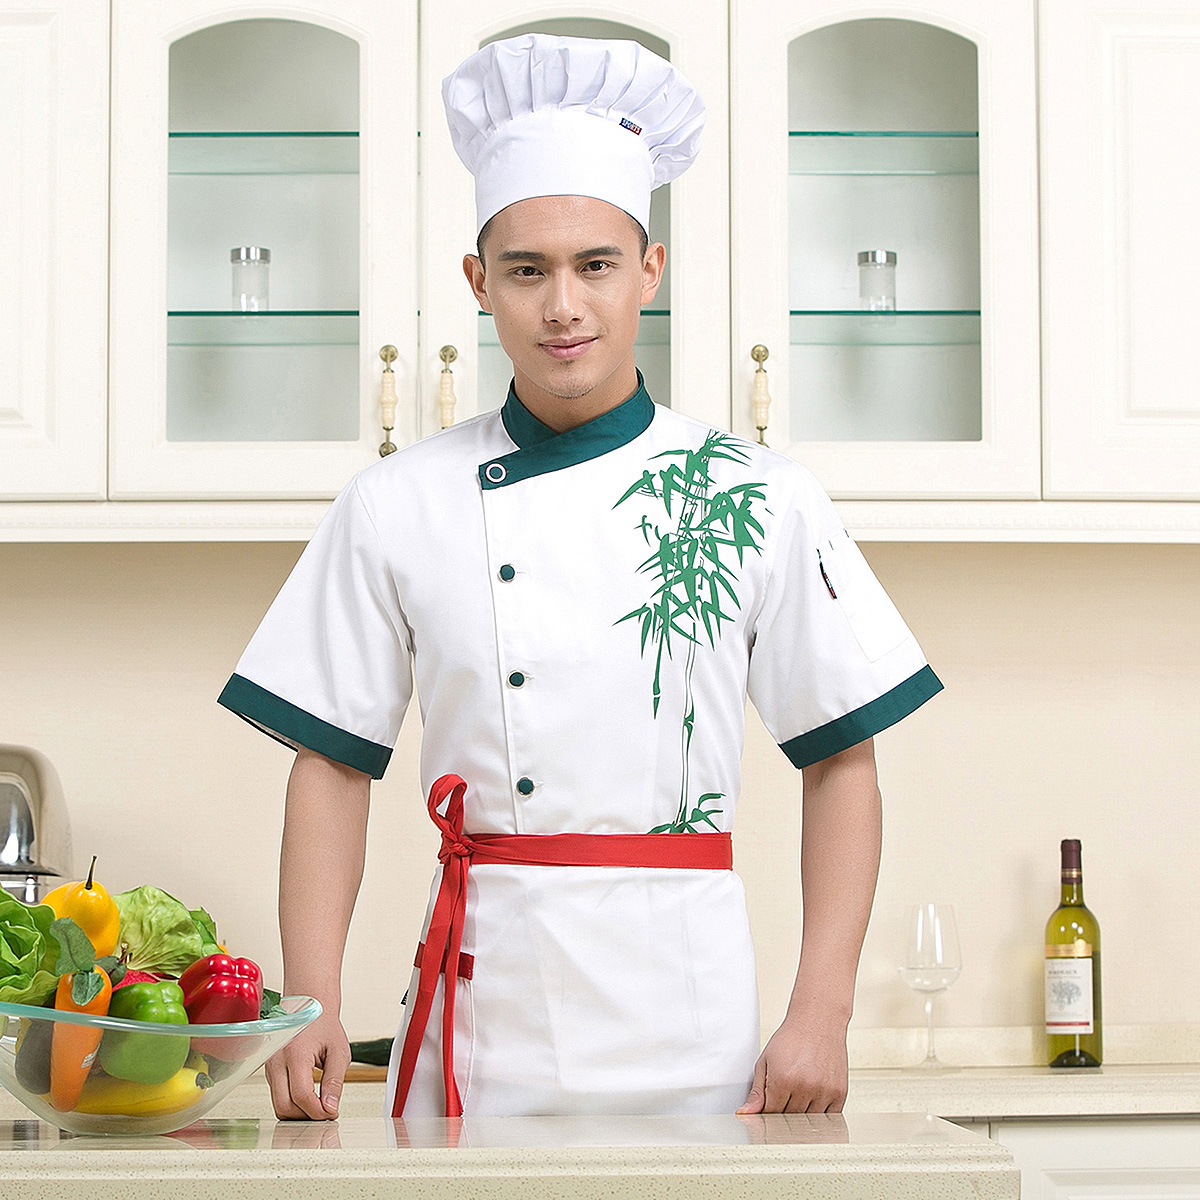 Restaurant Kitchen Uniforms high quality restaurant kitchen uniforms-buy cheap restaurant